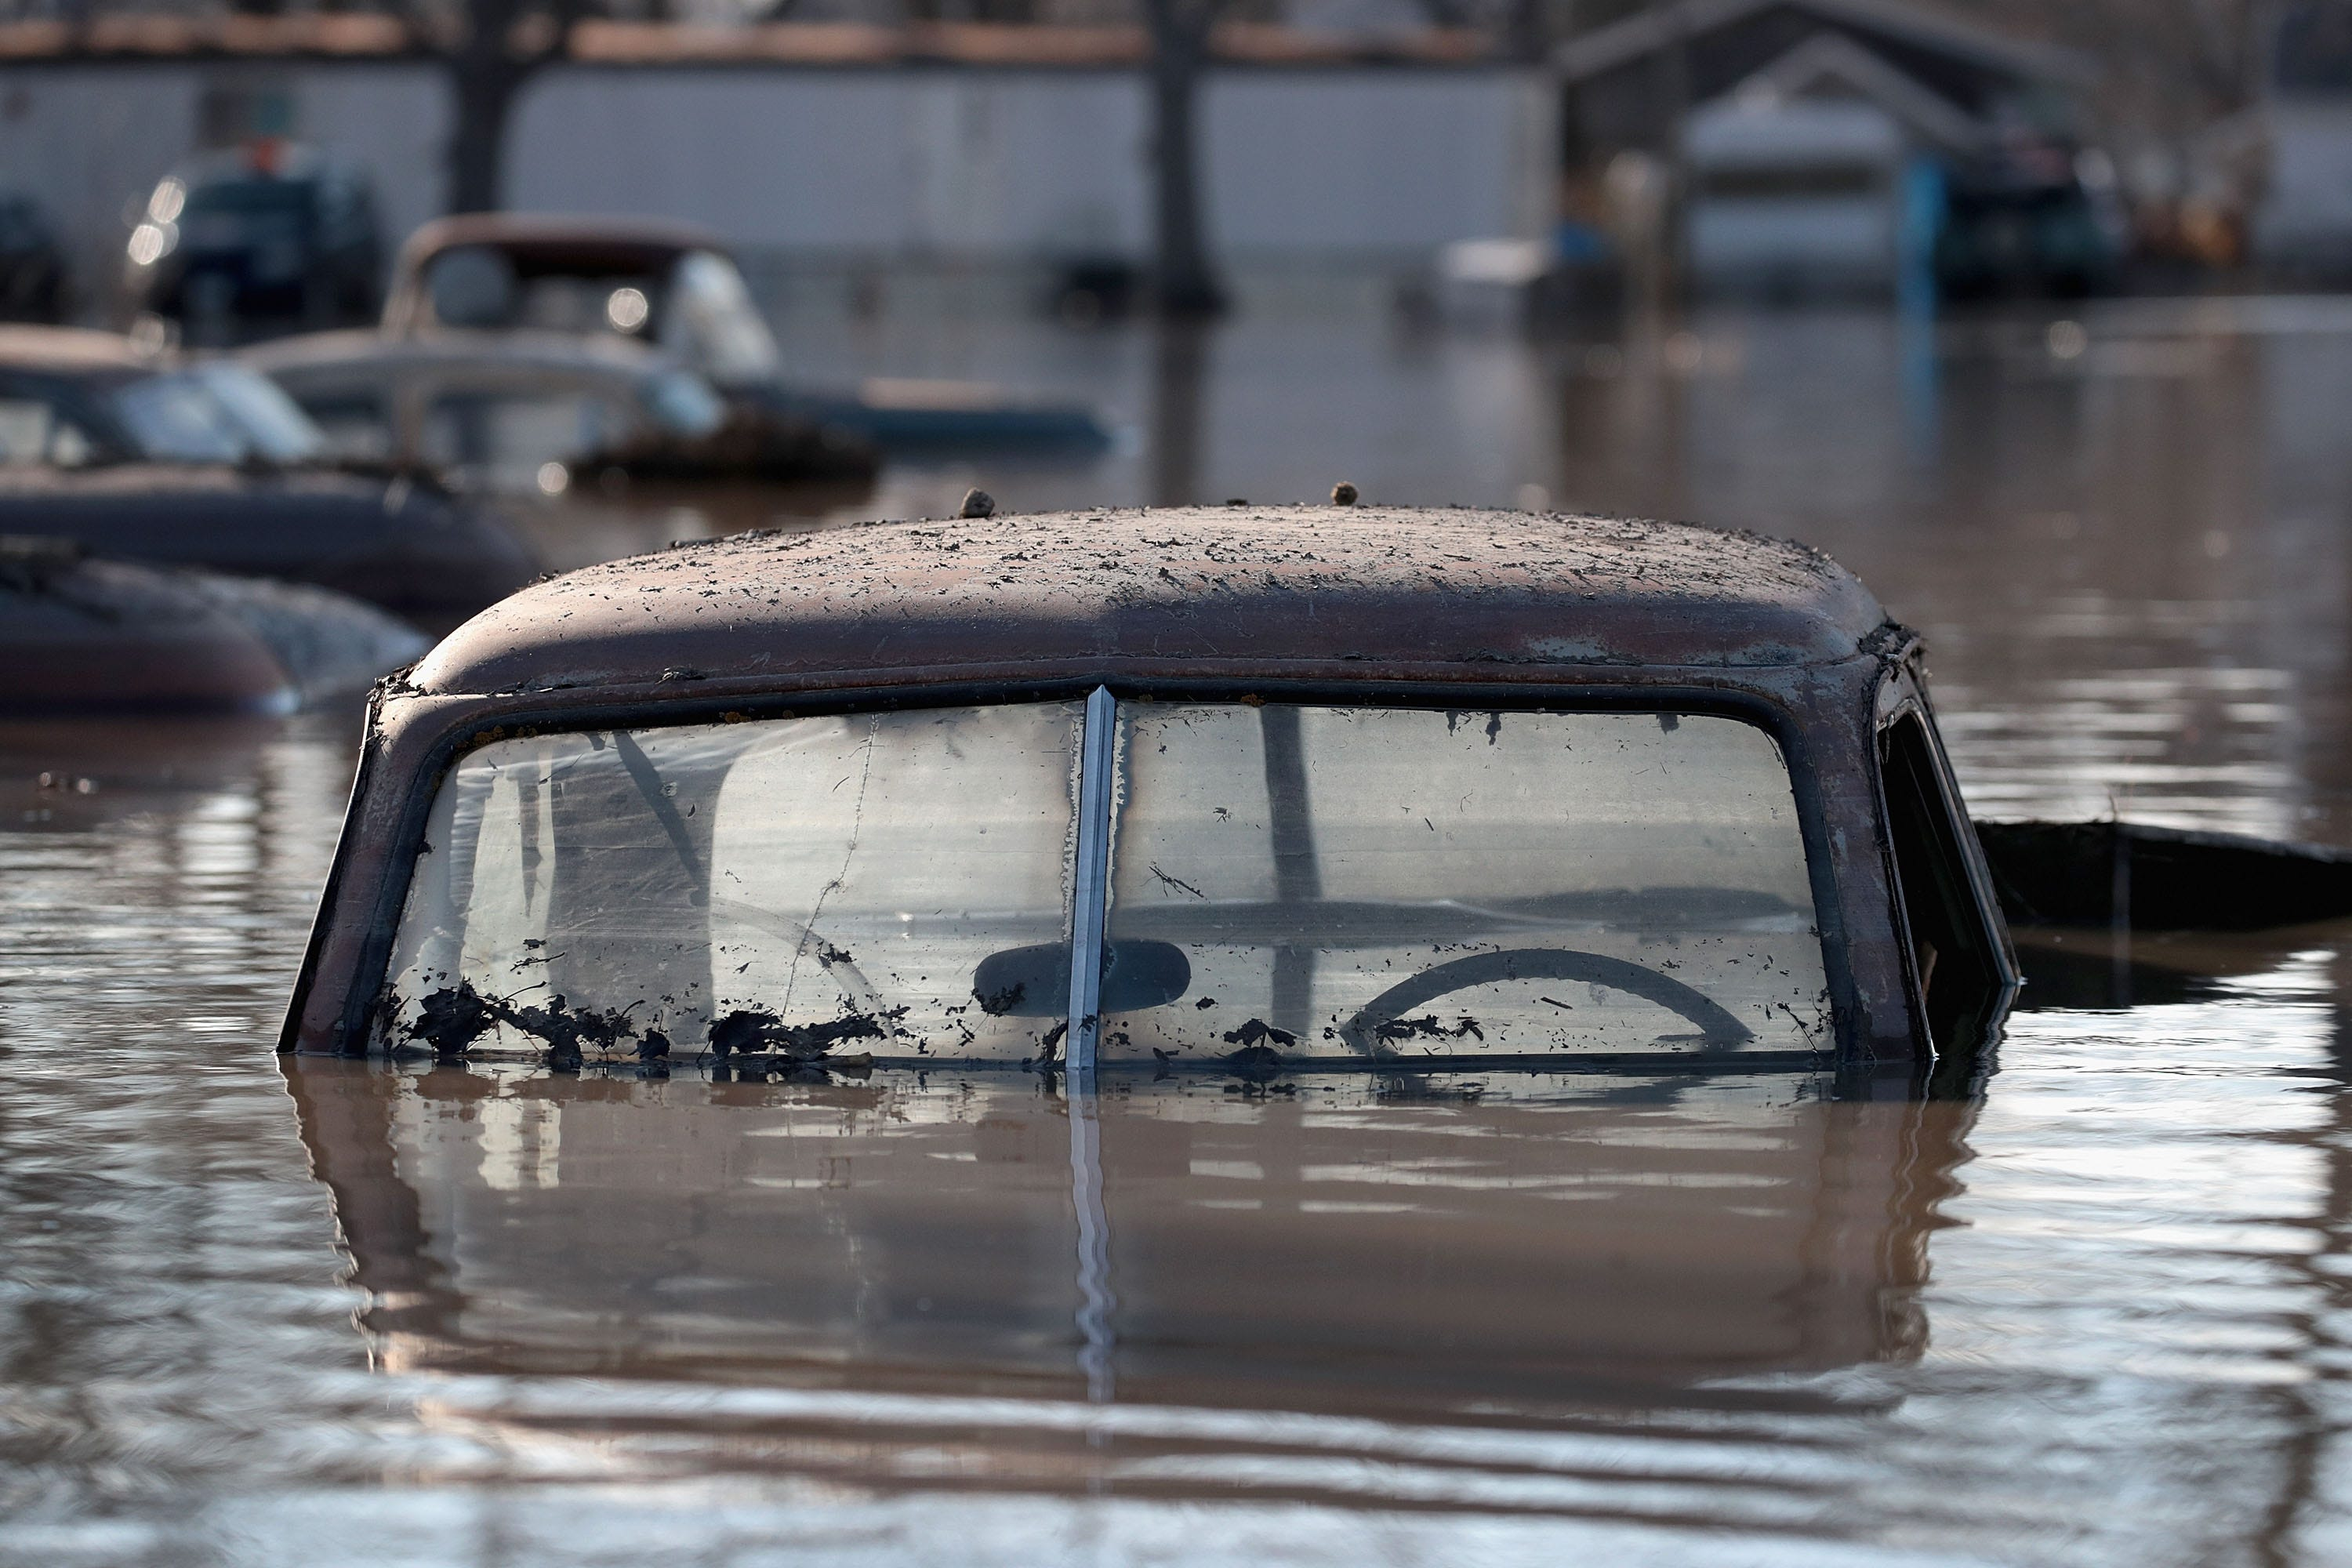 Spring flooding could be 'unprecedented' with 200 million Americans at risk